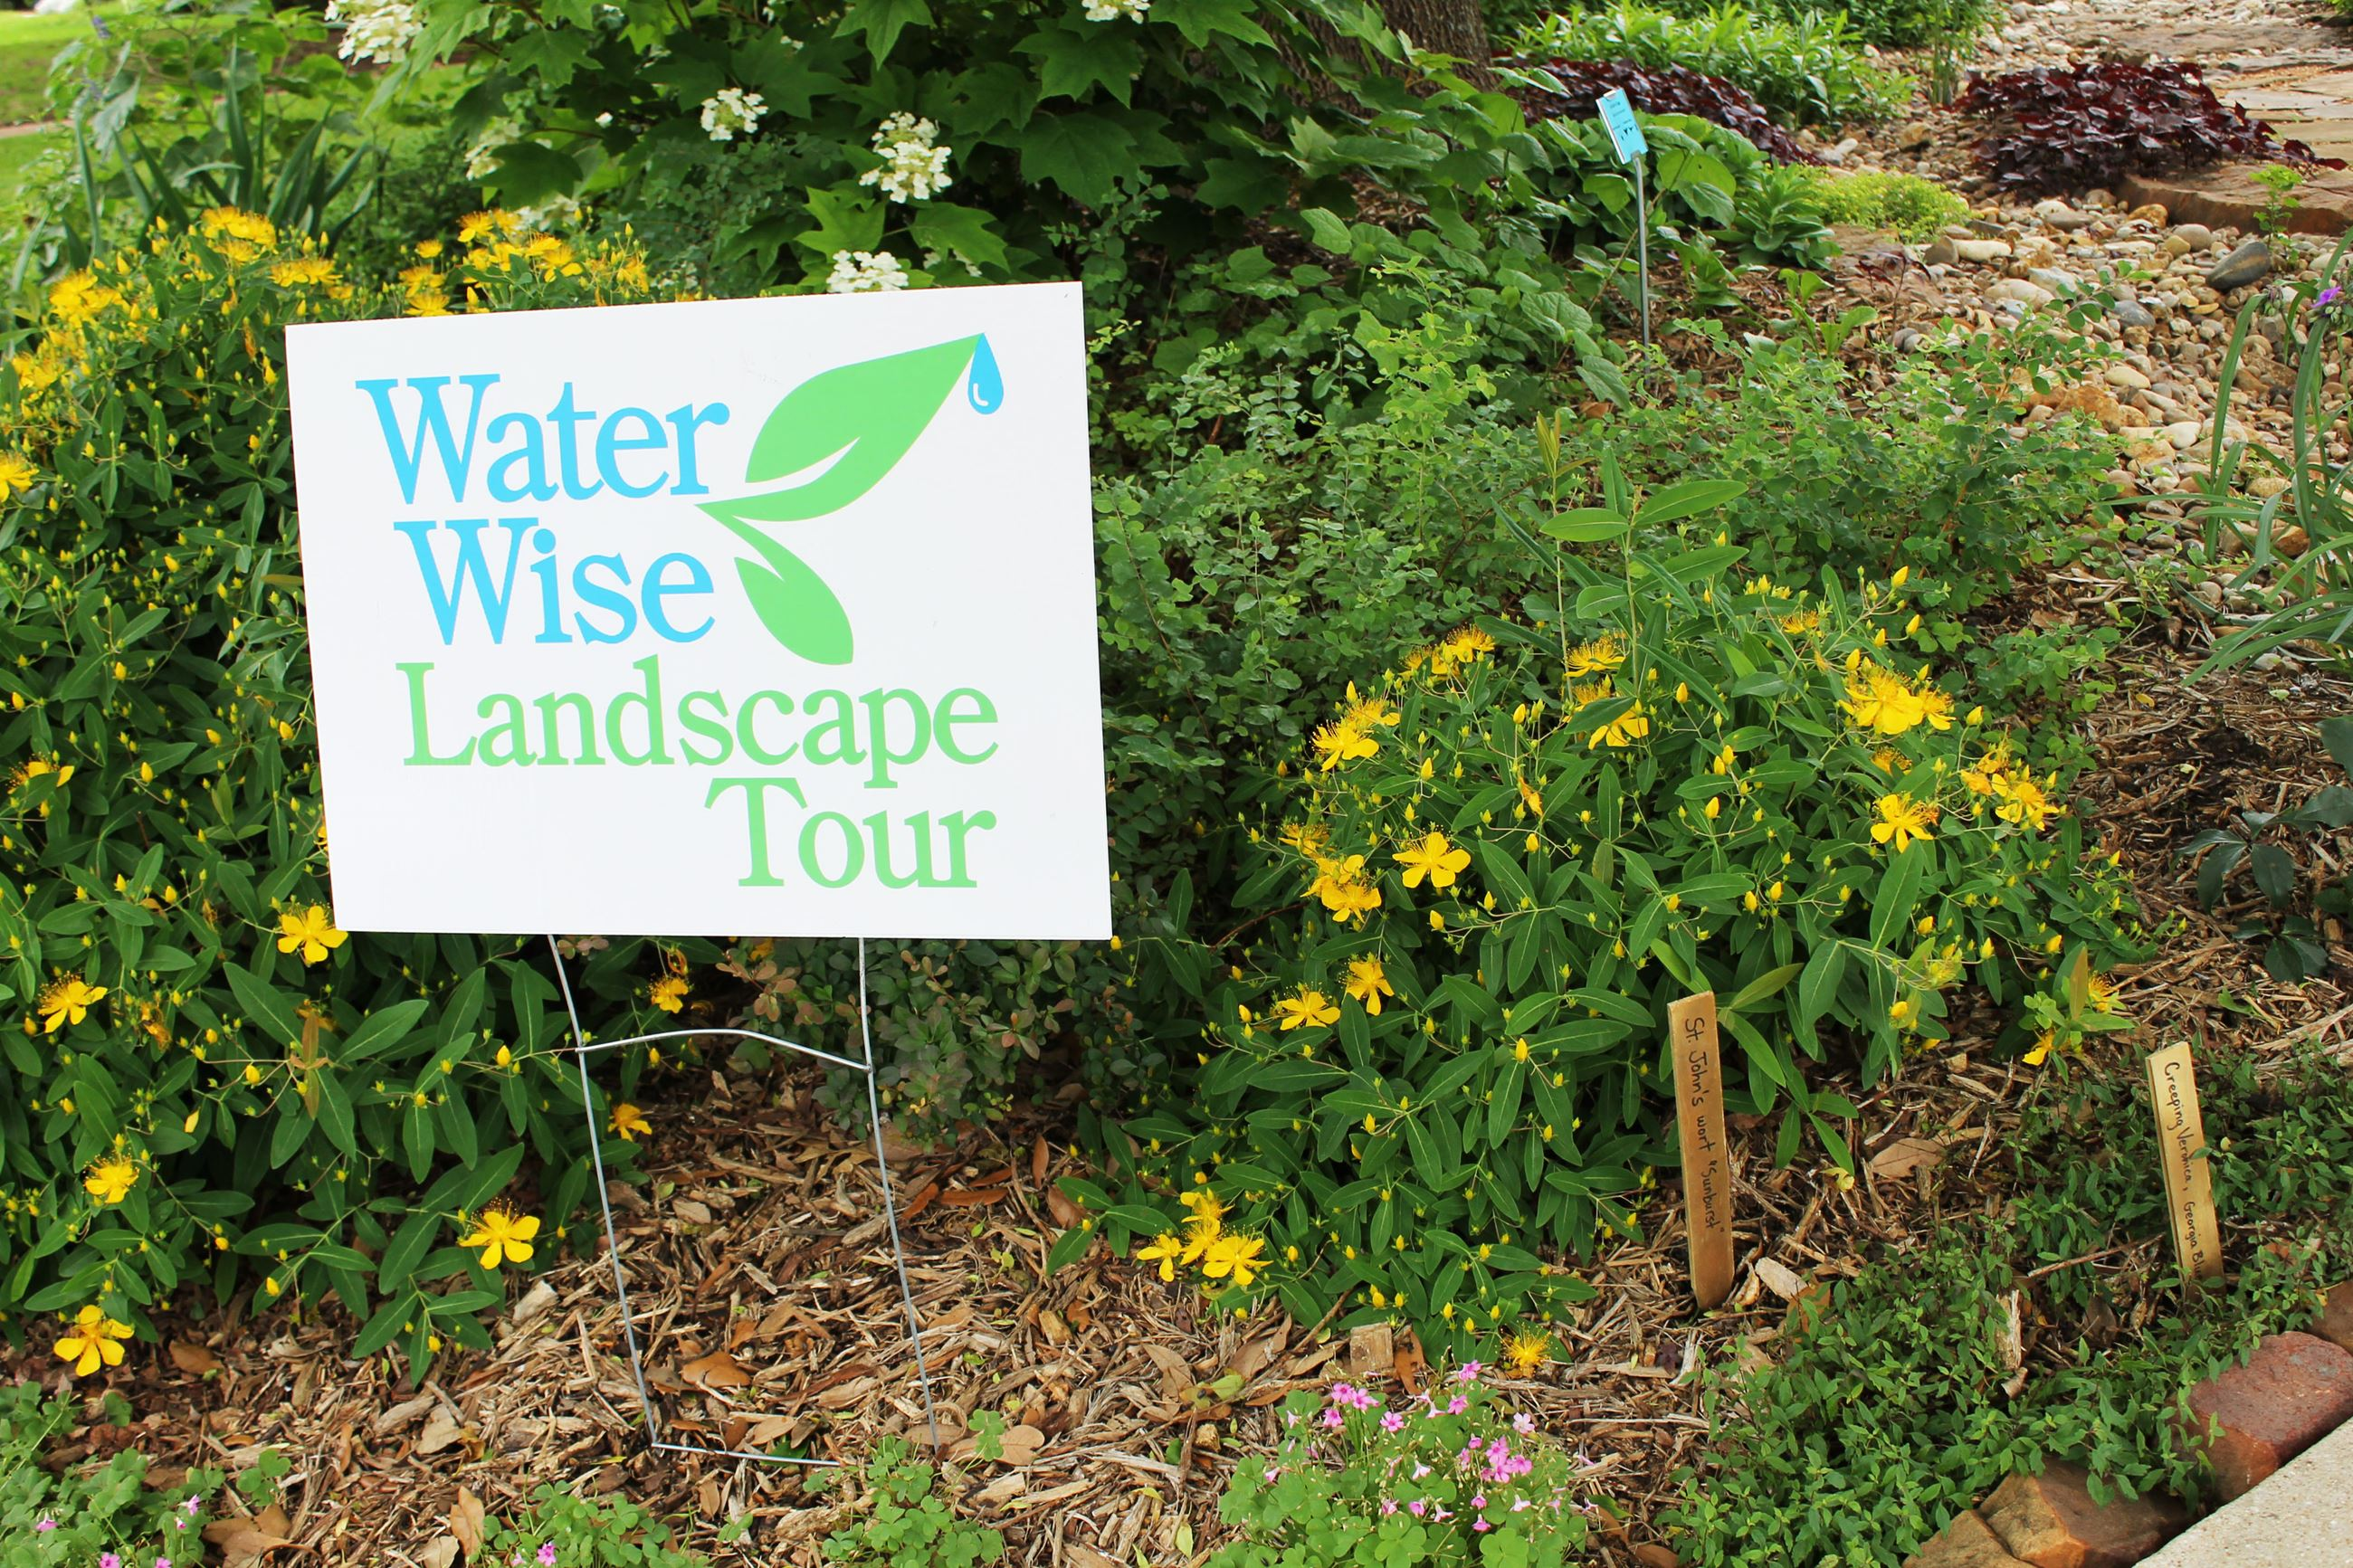 WaterWise Landscape Tour